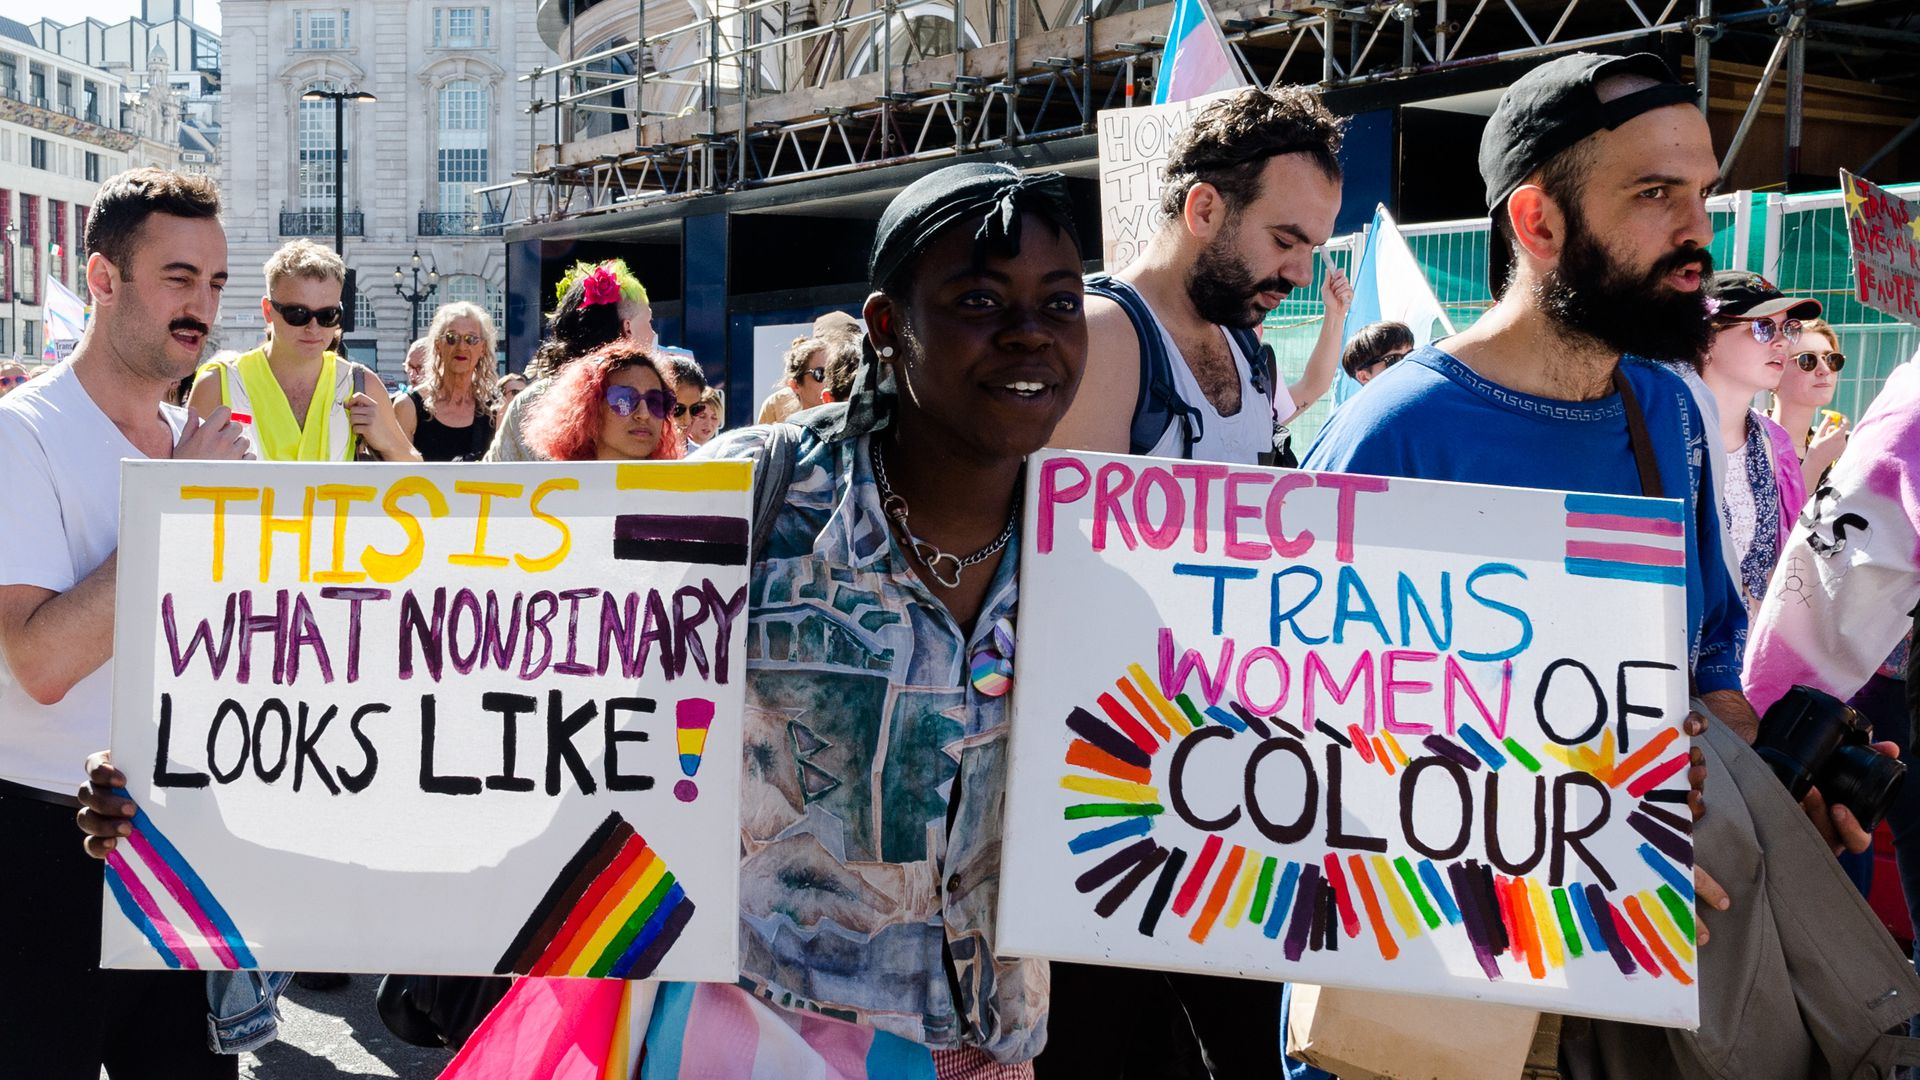 Protesters march in support of the transgender community